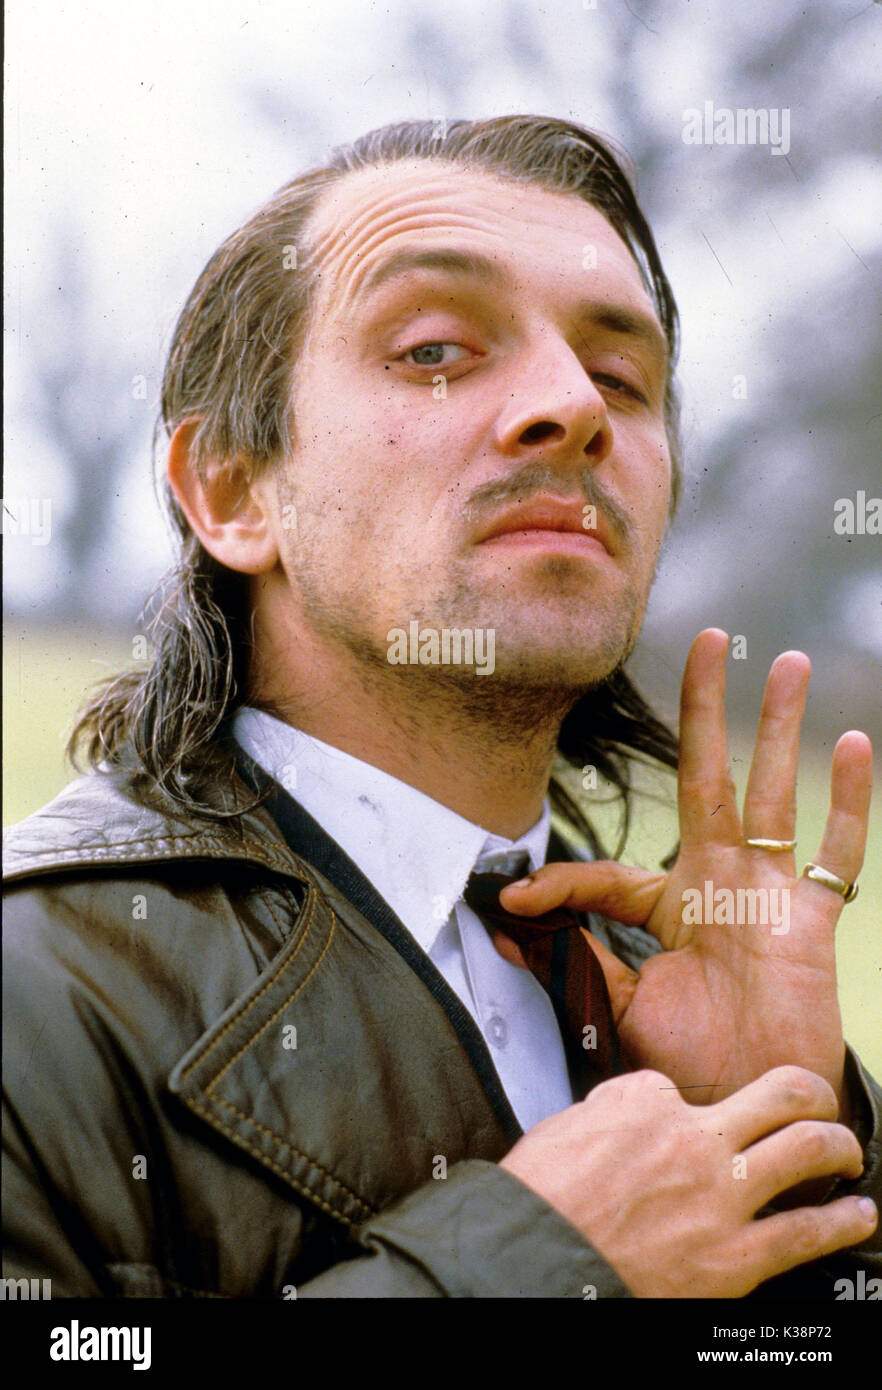 COMIC STRIP PRESENTS... MR. JOLLY LIVES NEXT DOOR RIK MAYAL Episode #4.3 TX 5 March 1988 - Stock Image